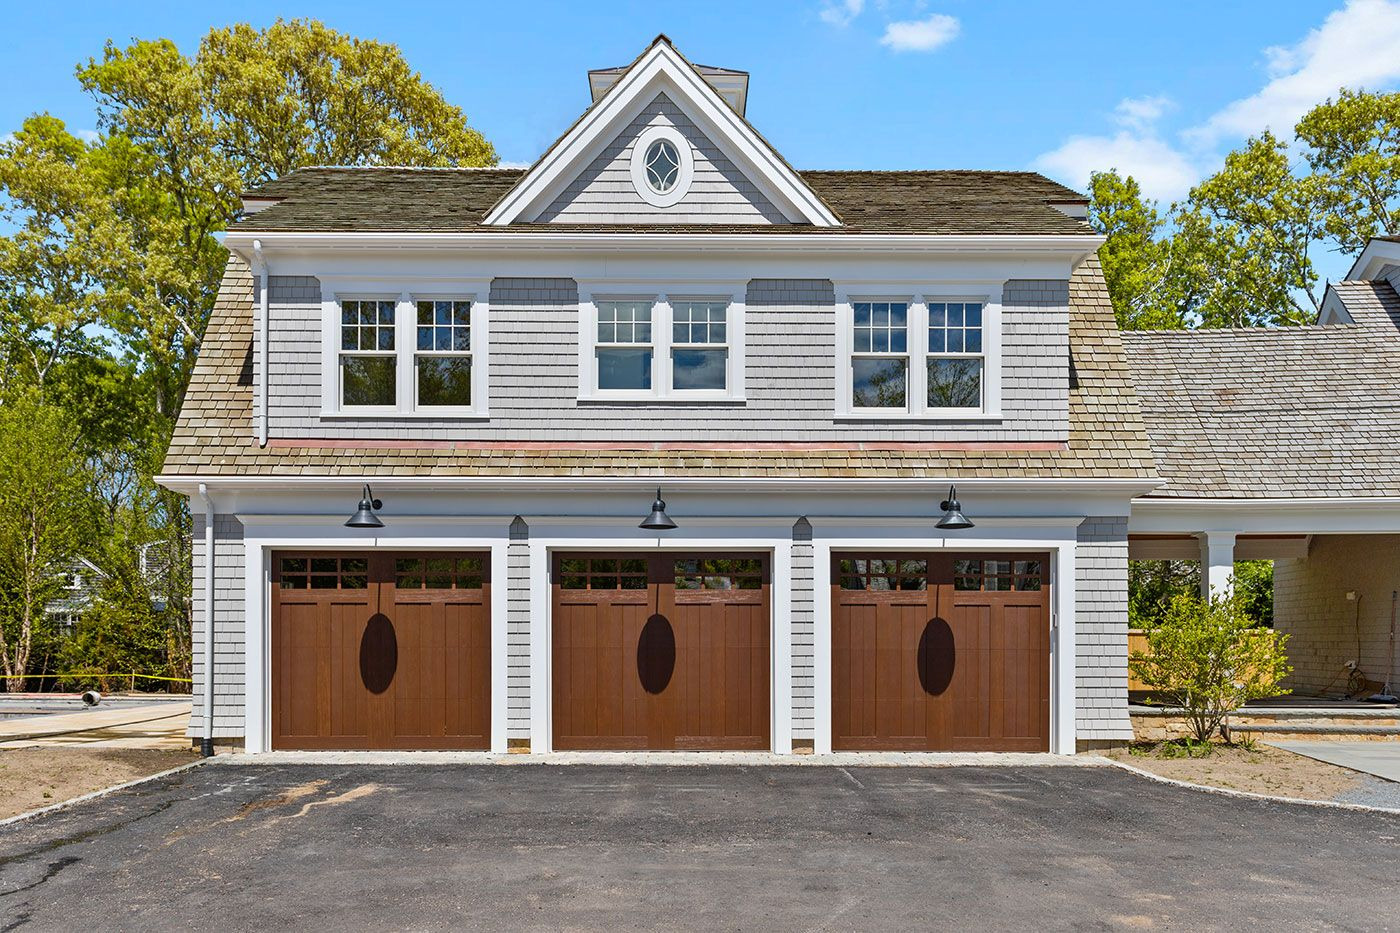 Designer Garage Doors Photo By Edward Glick Bluwaterphotography